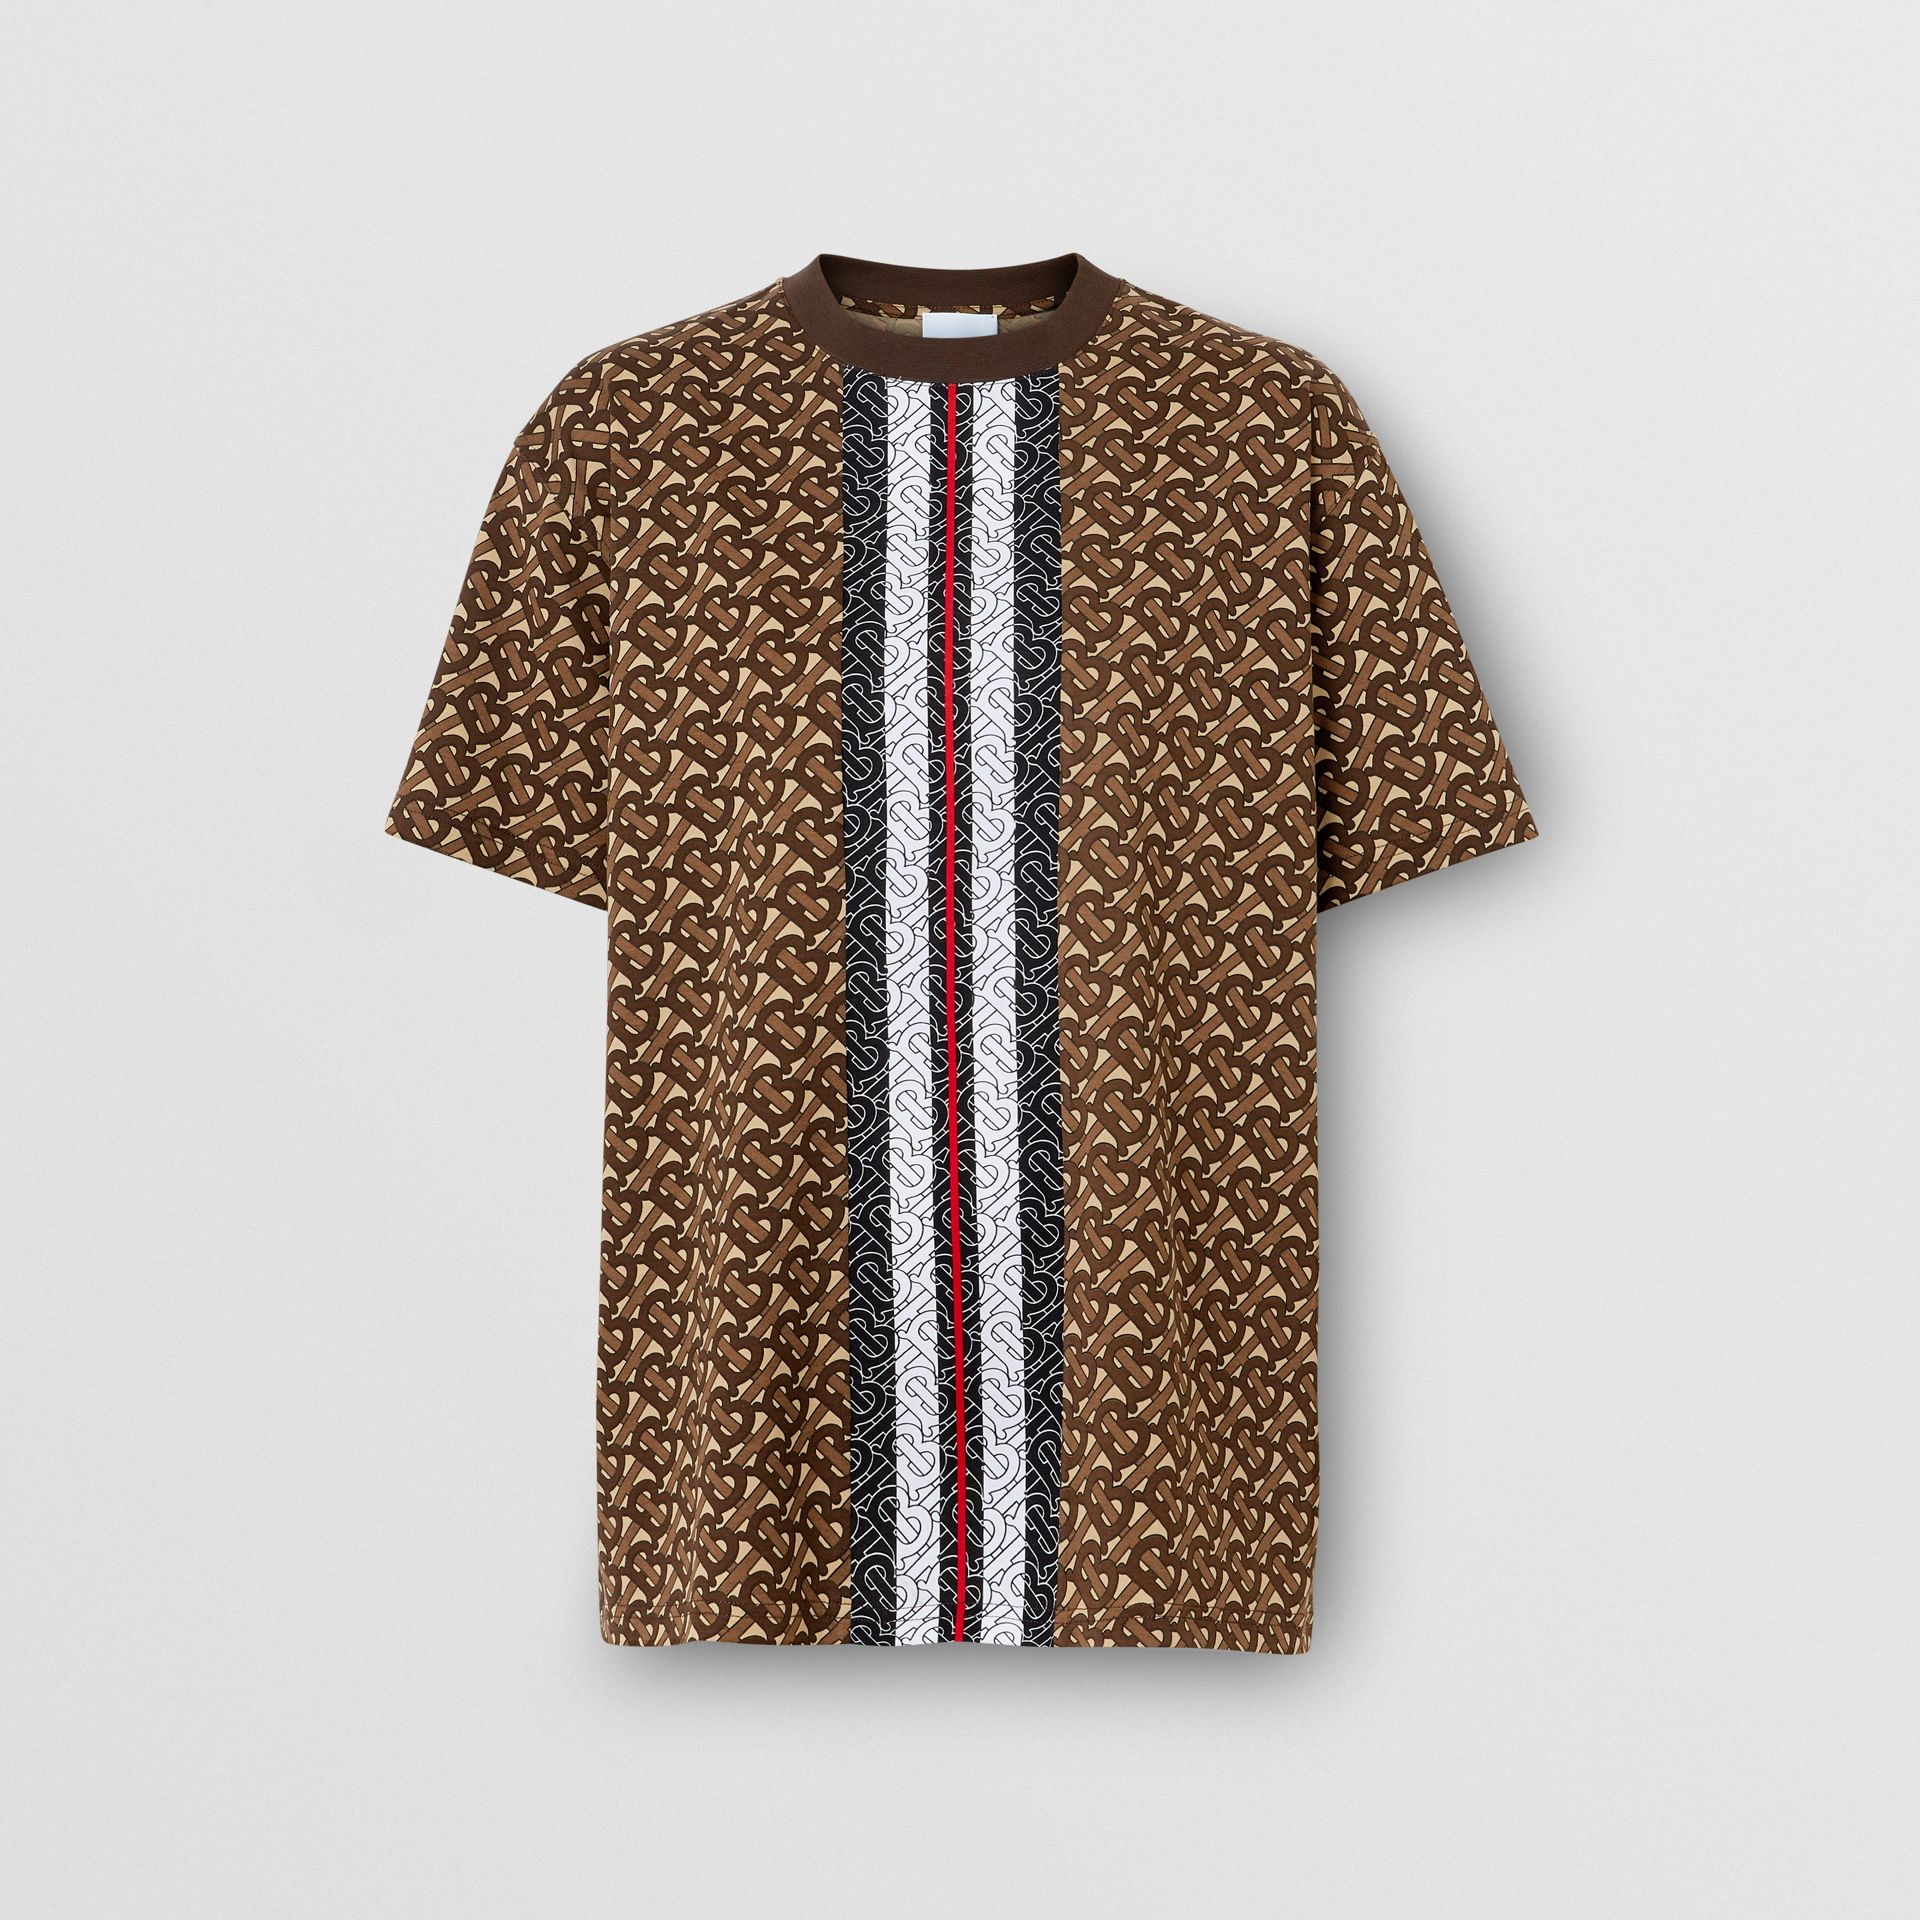 Monogram Stripe Print Cotton Oversized T-shirt in Bridle Brown - Women | Burberry Canada - gallery image 3